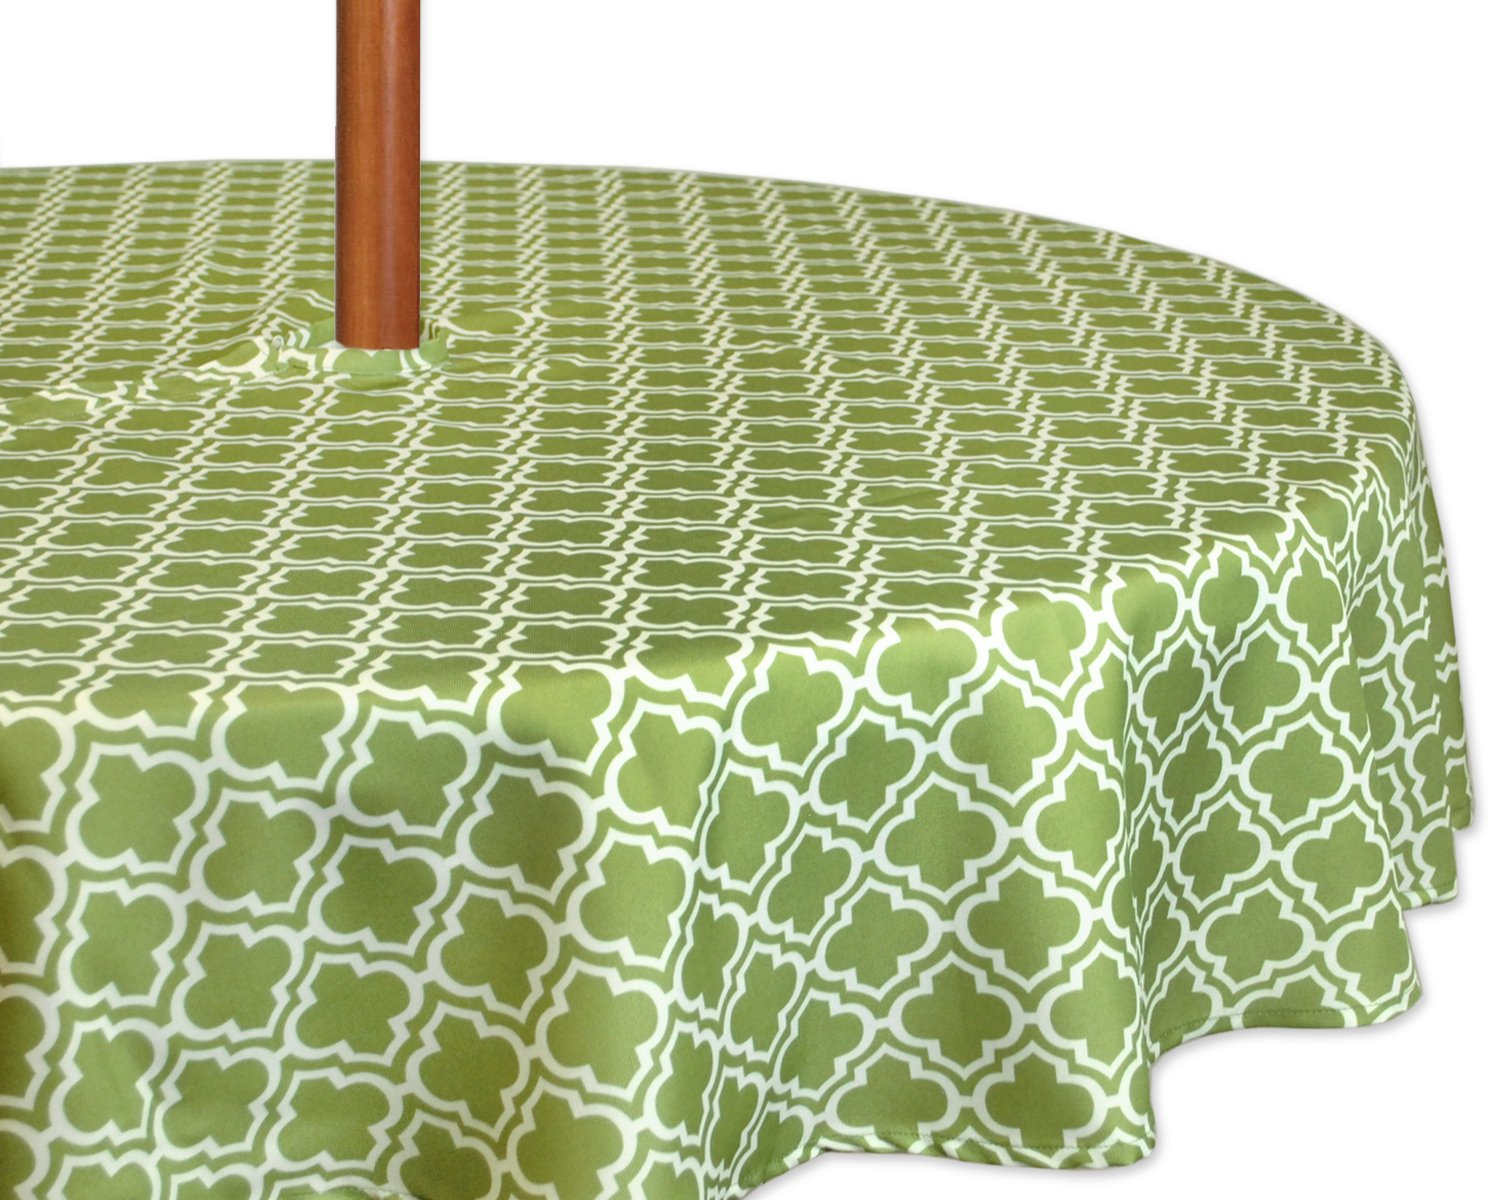 """DII 100% Polyester, Spill Proof, Machine Washable, Zipper Tablecloth for Outdoor Use with Umbrella Covered Tables, 52"""" Round, Fresh Spring Lattice, Seats 4 People, w, Green"""